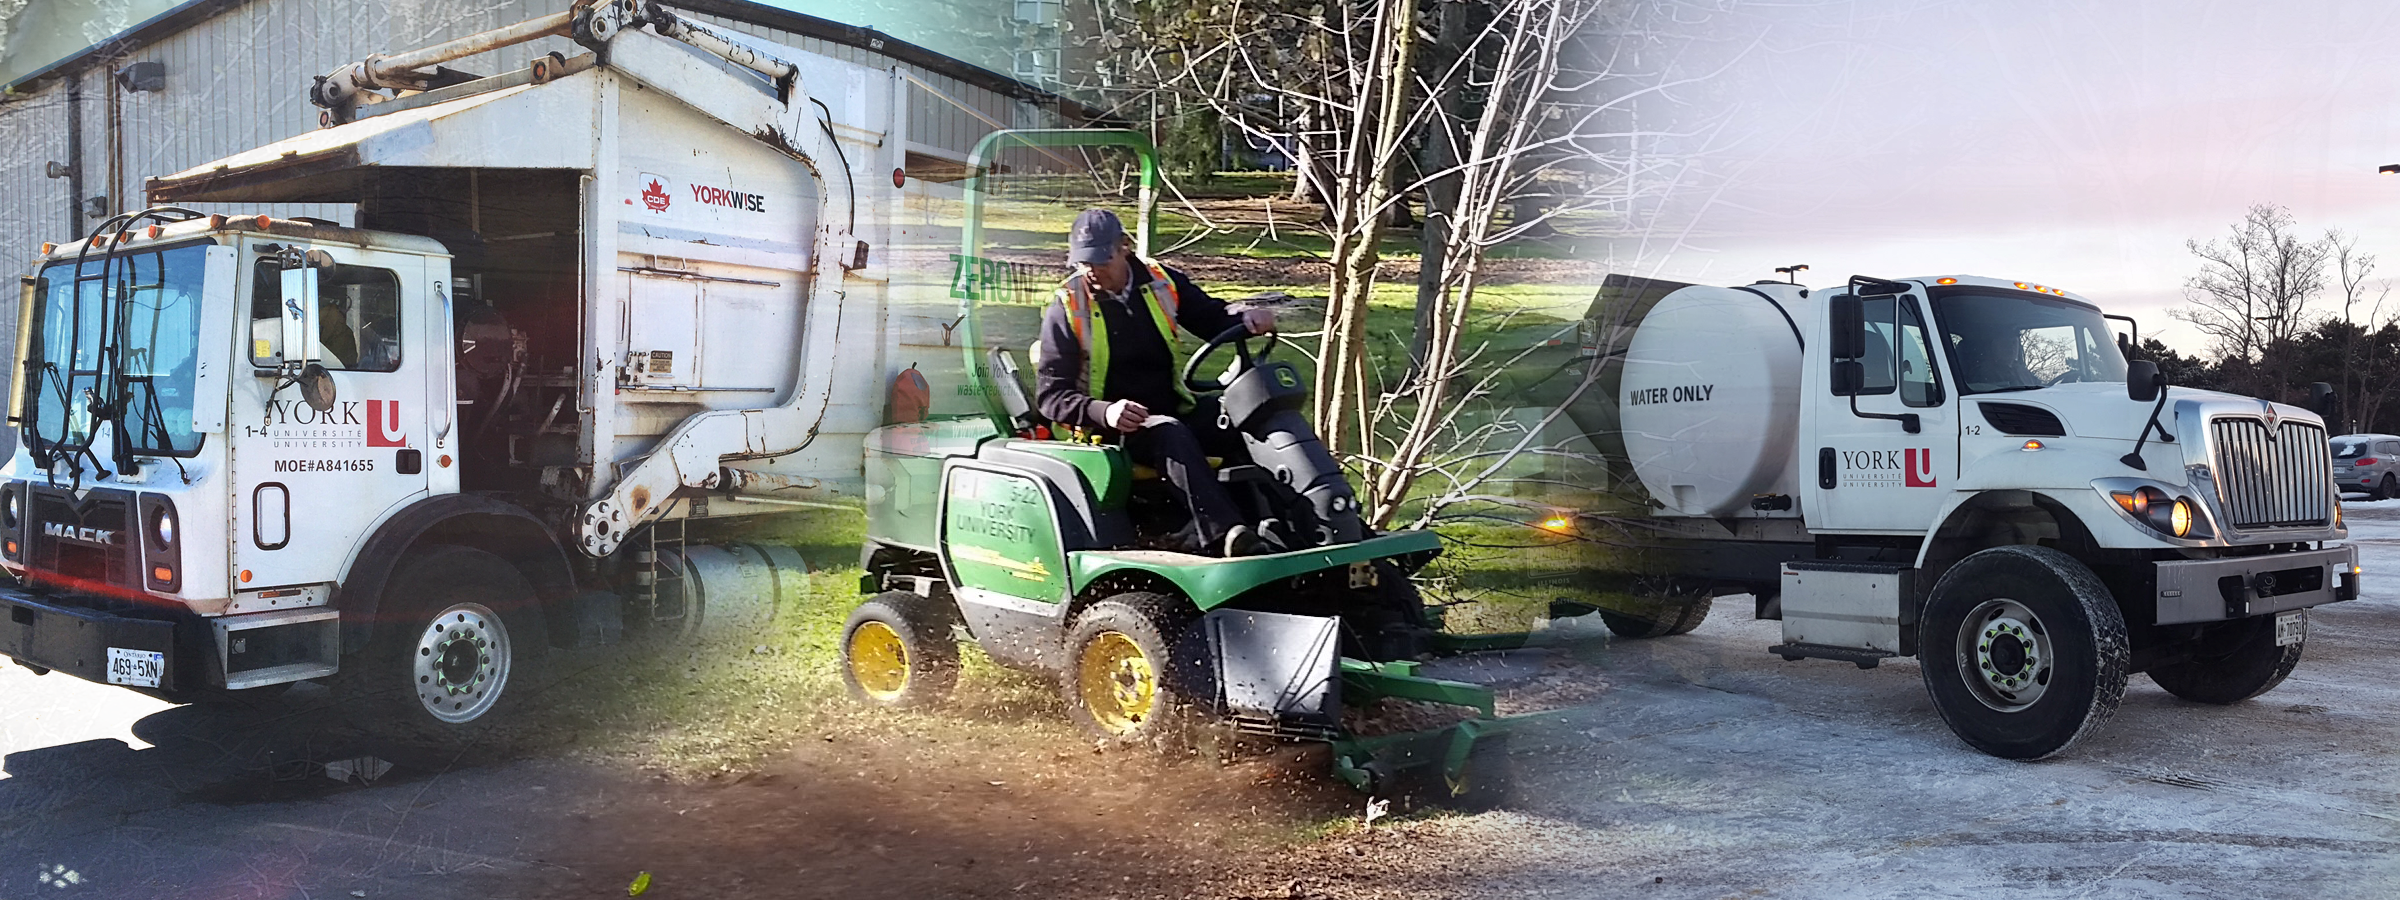 Grounds maintaining our campuses